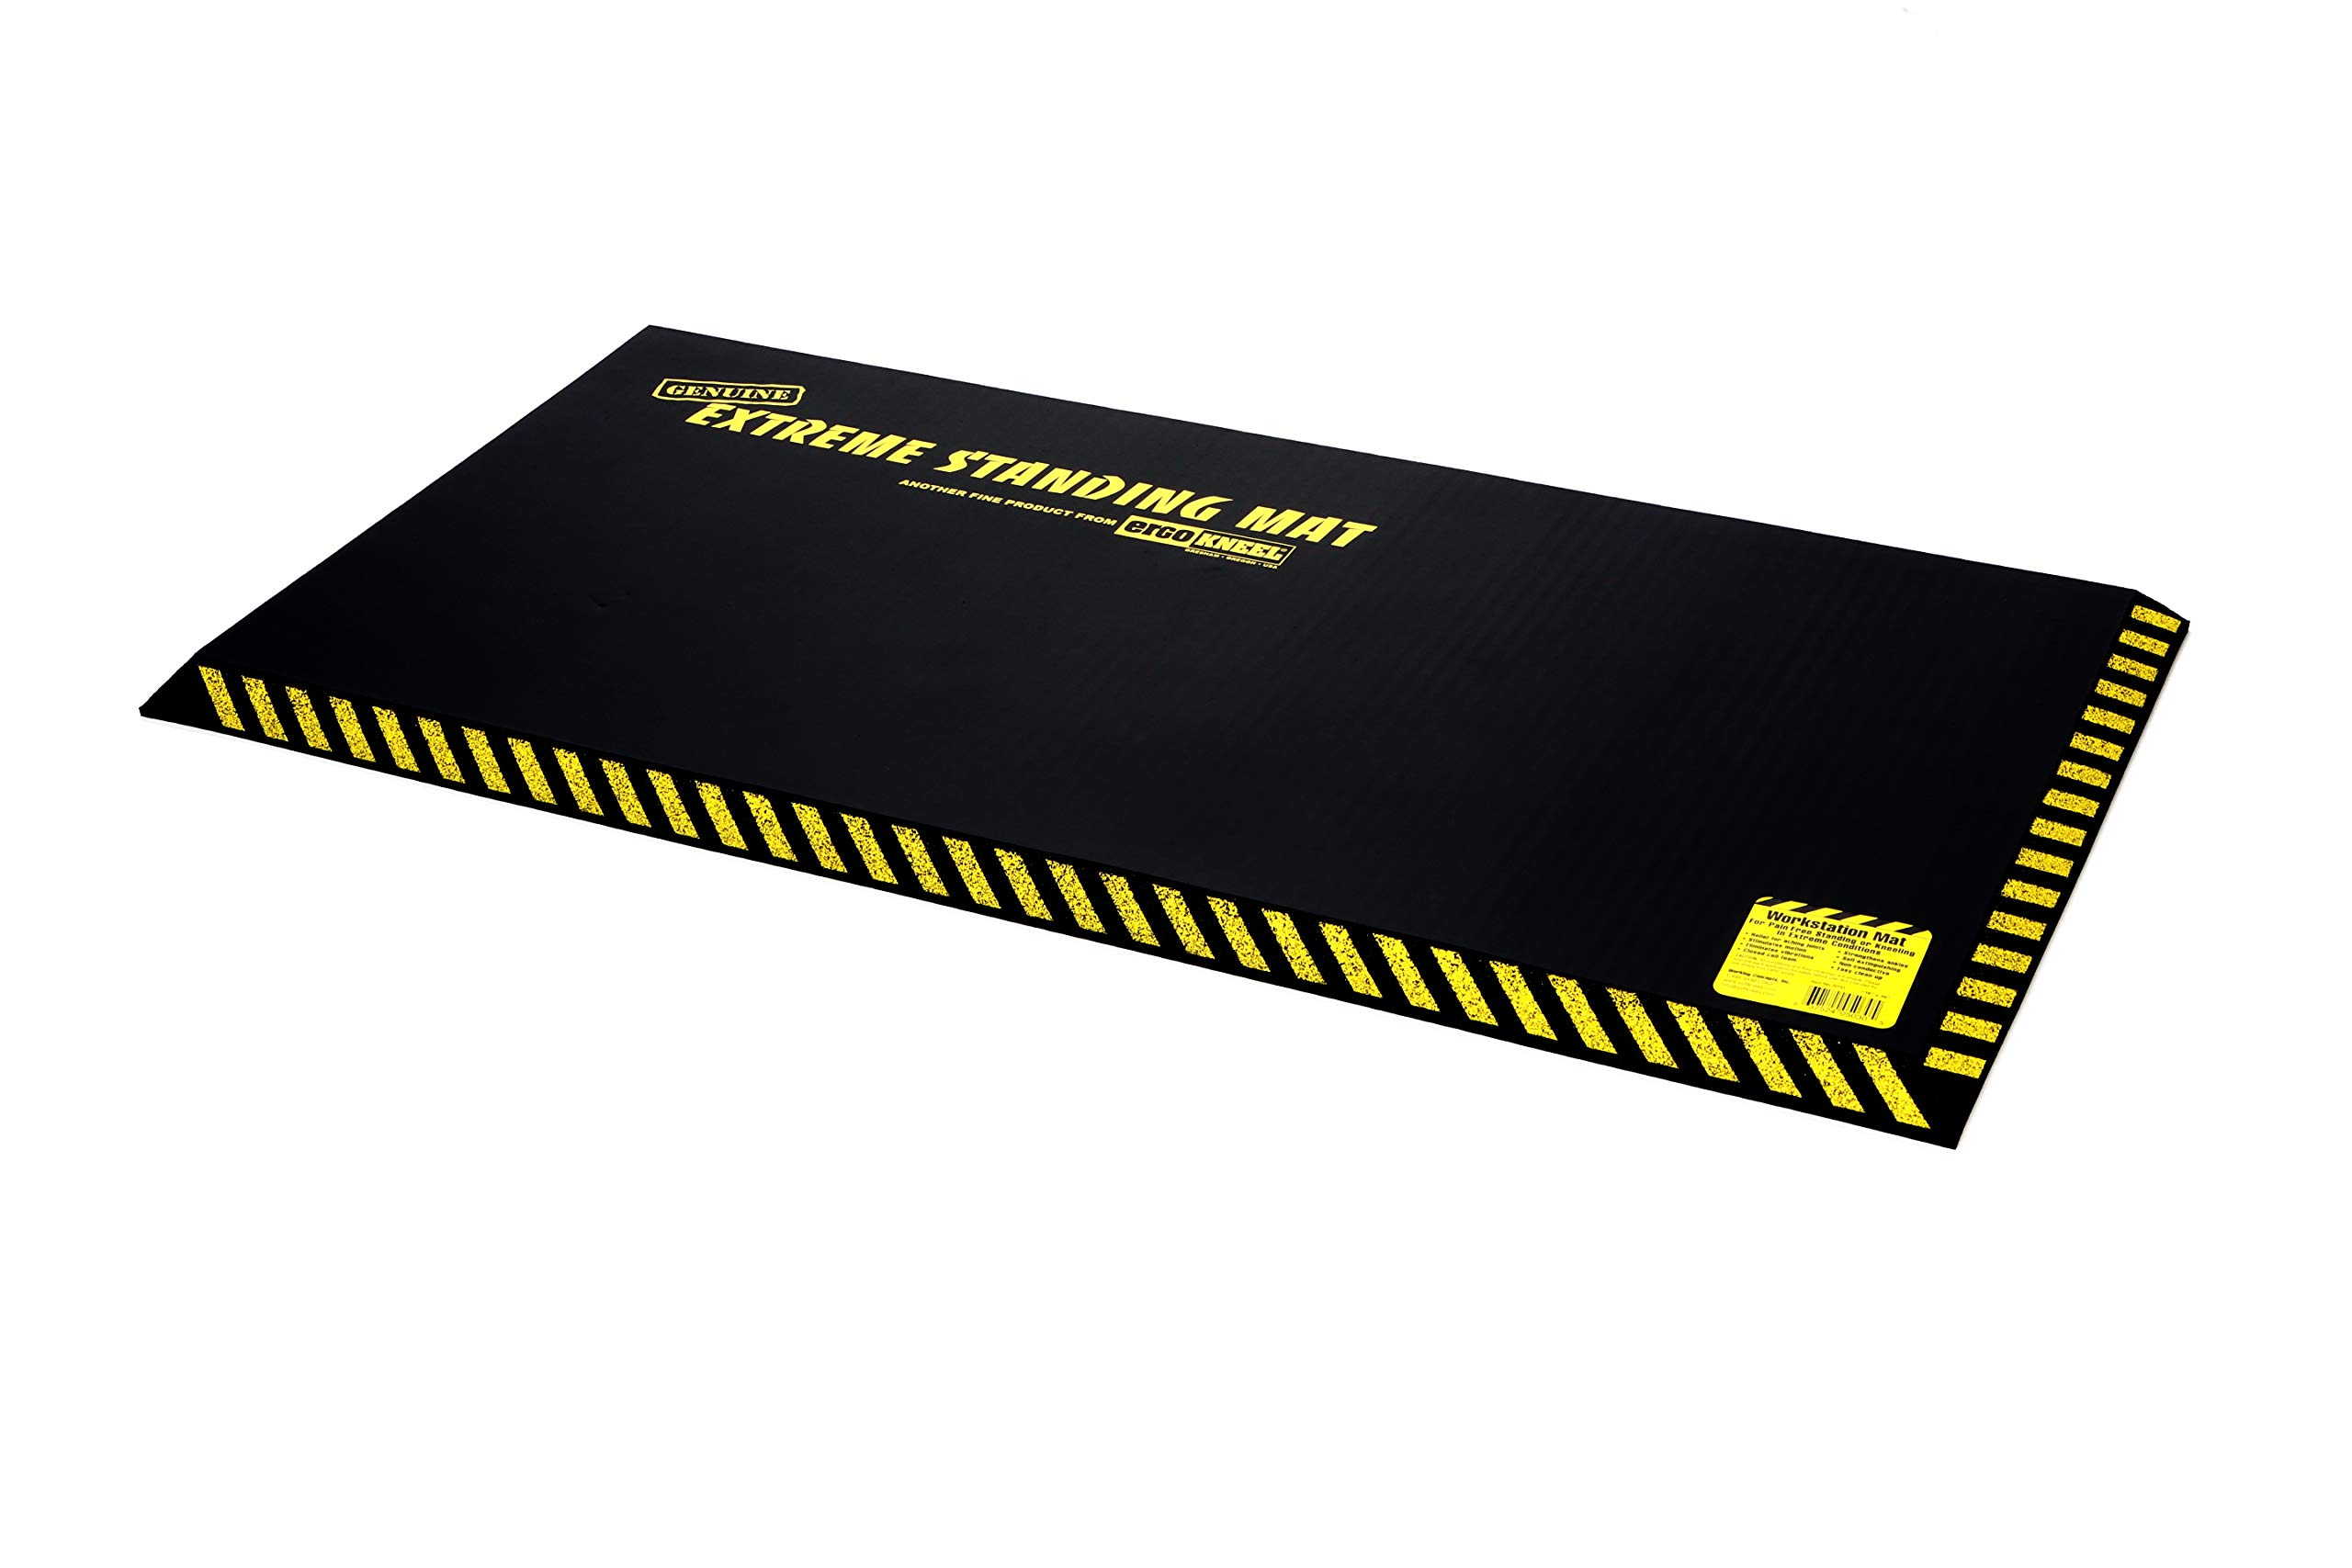 5030 Extreme Standing Mat 18'' x 36'' x 1'' by Extreme Standing Mat